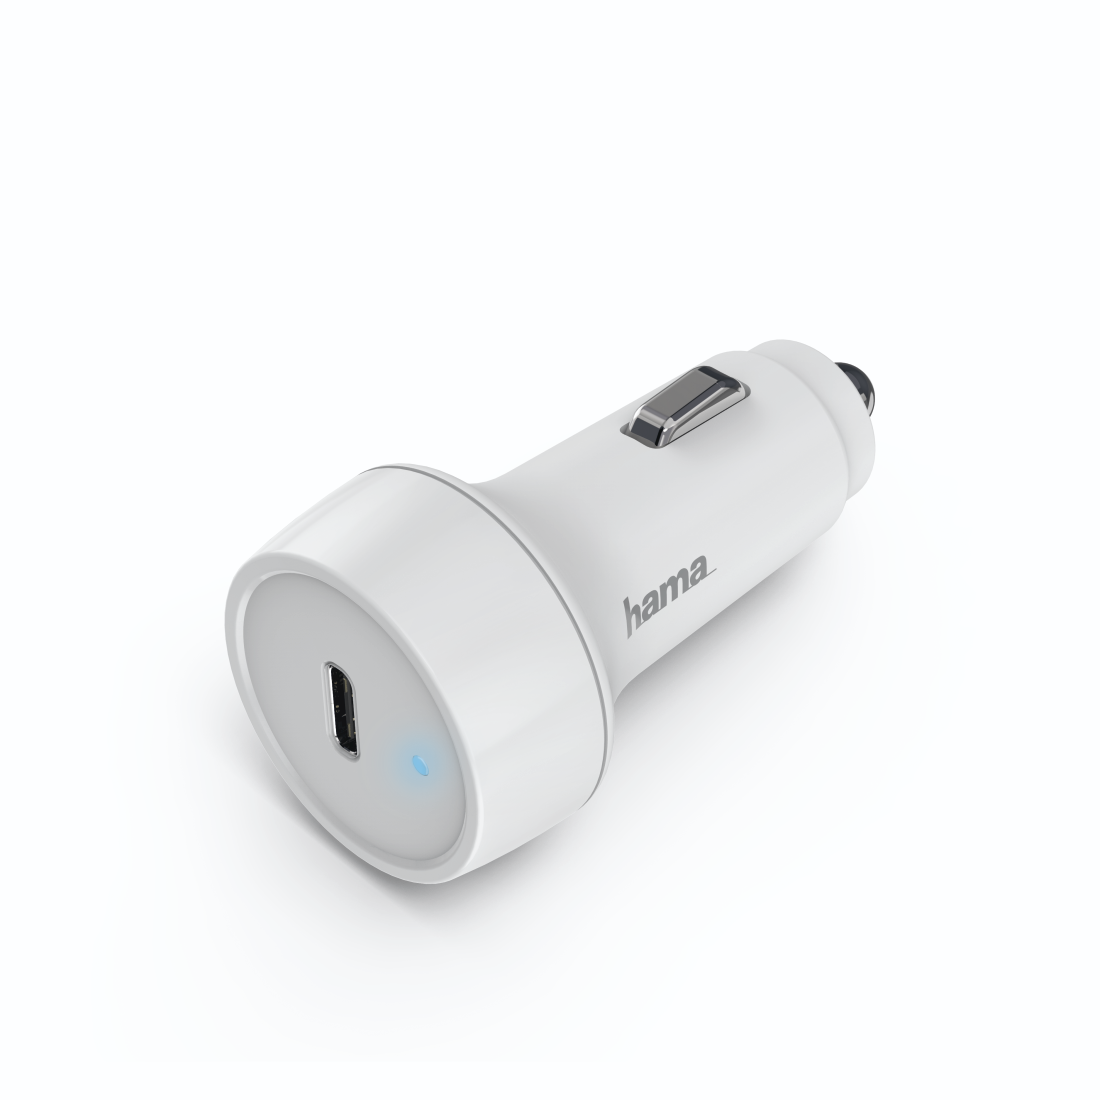 abx2 High-Res Image 2 - Hama, Car Charger, Power Delivery (PD) / Qualcomm®, 18 W, white